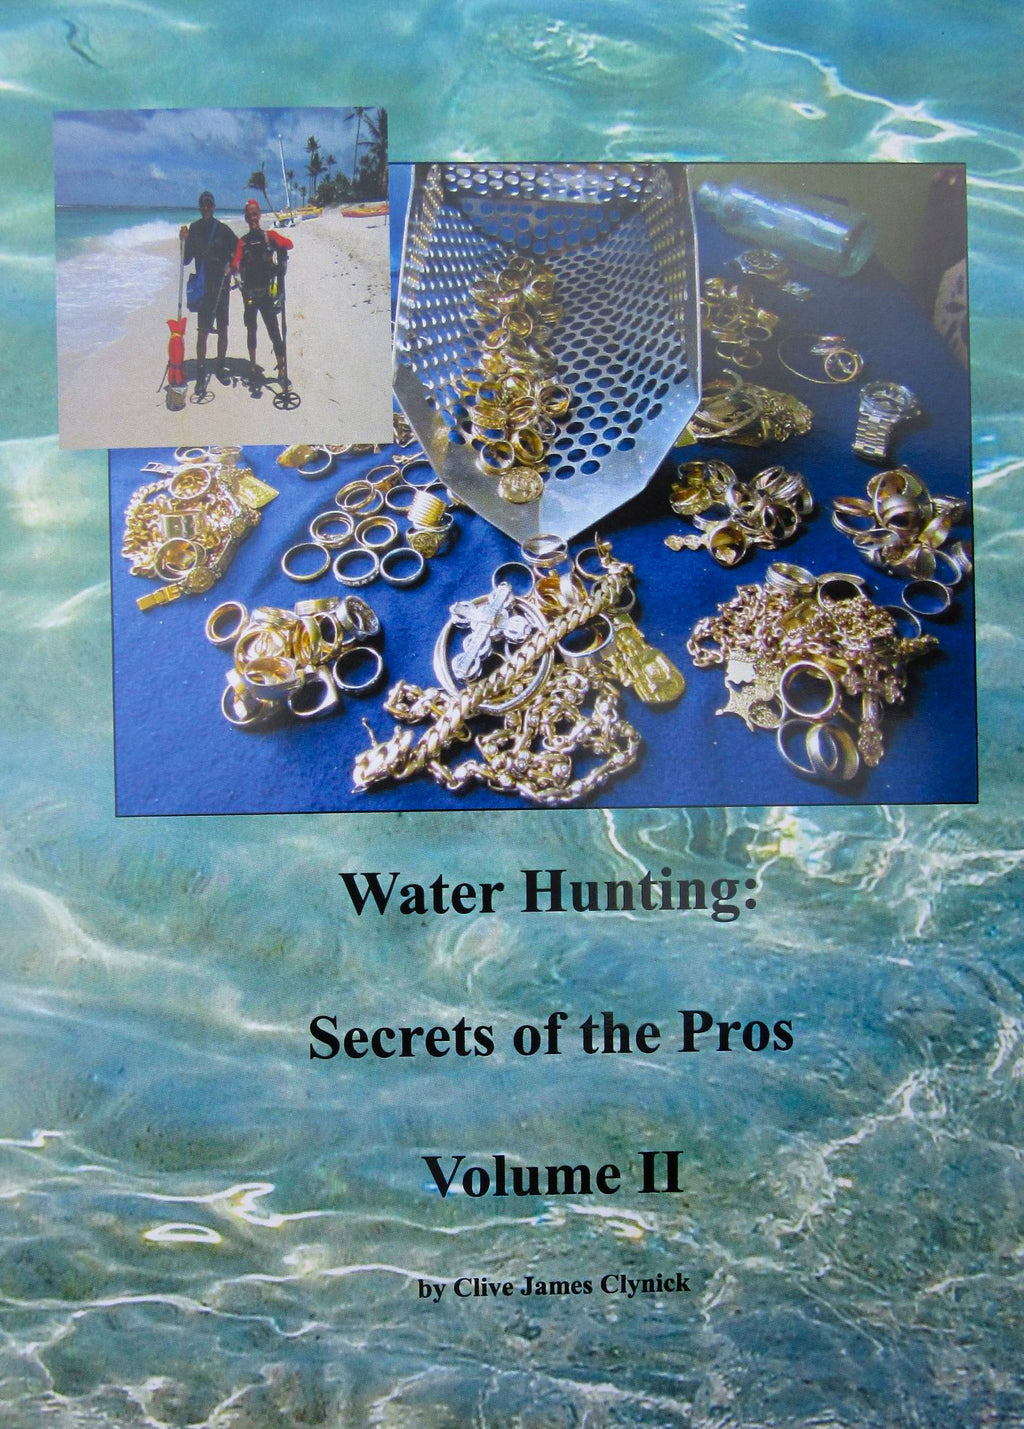 Water Hunting: Secrets of the Pros Volume II By Clive James Clynick